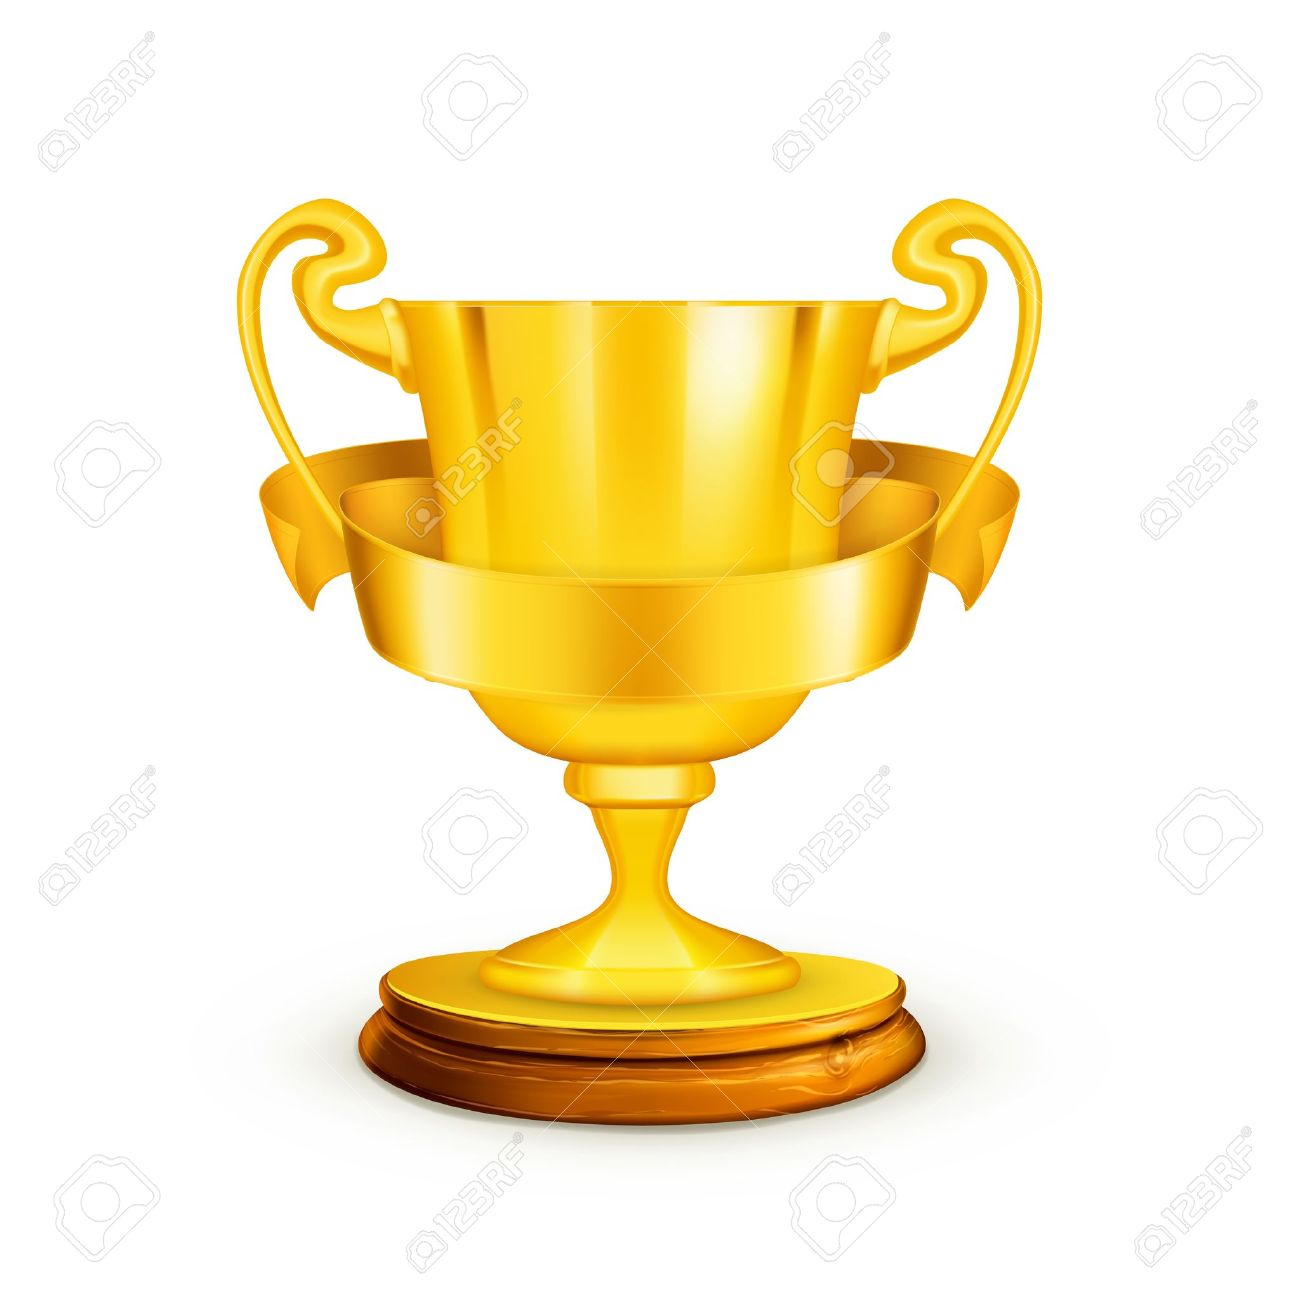 gold trophy illustration royalty free cliparts vectors and stock